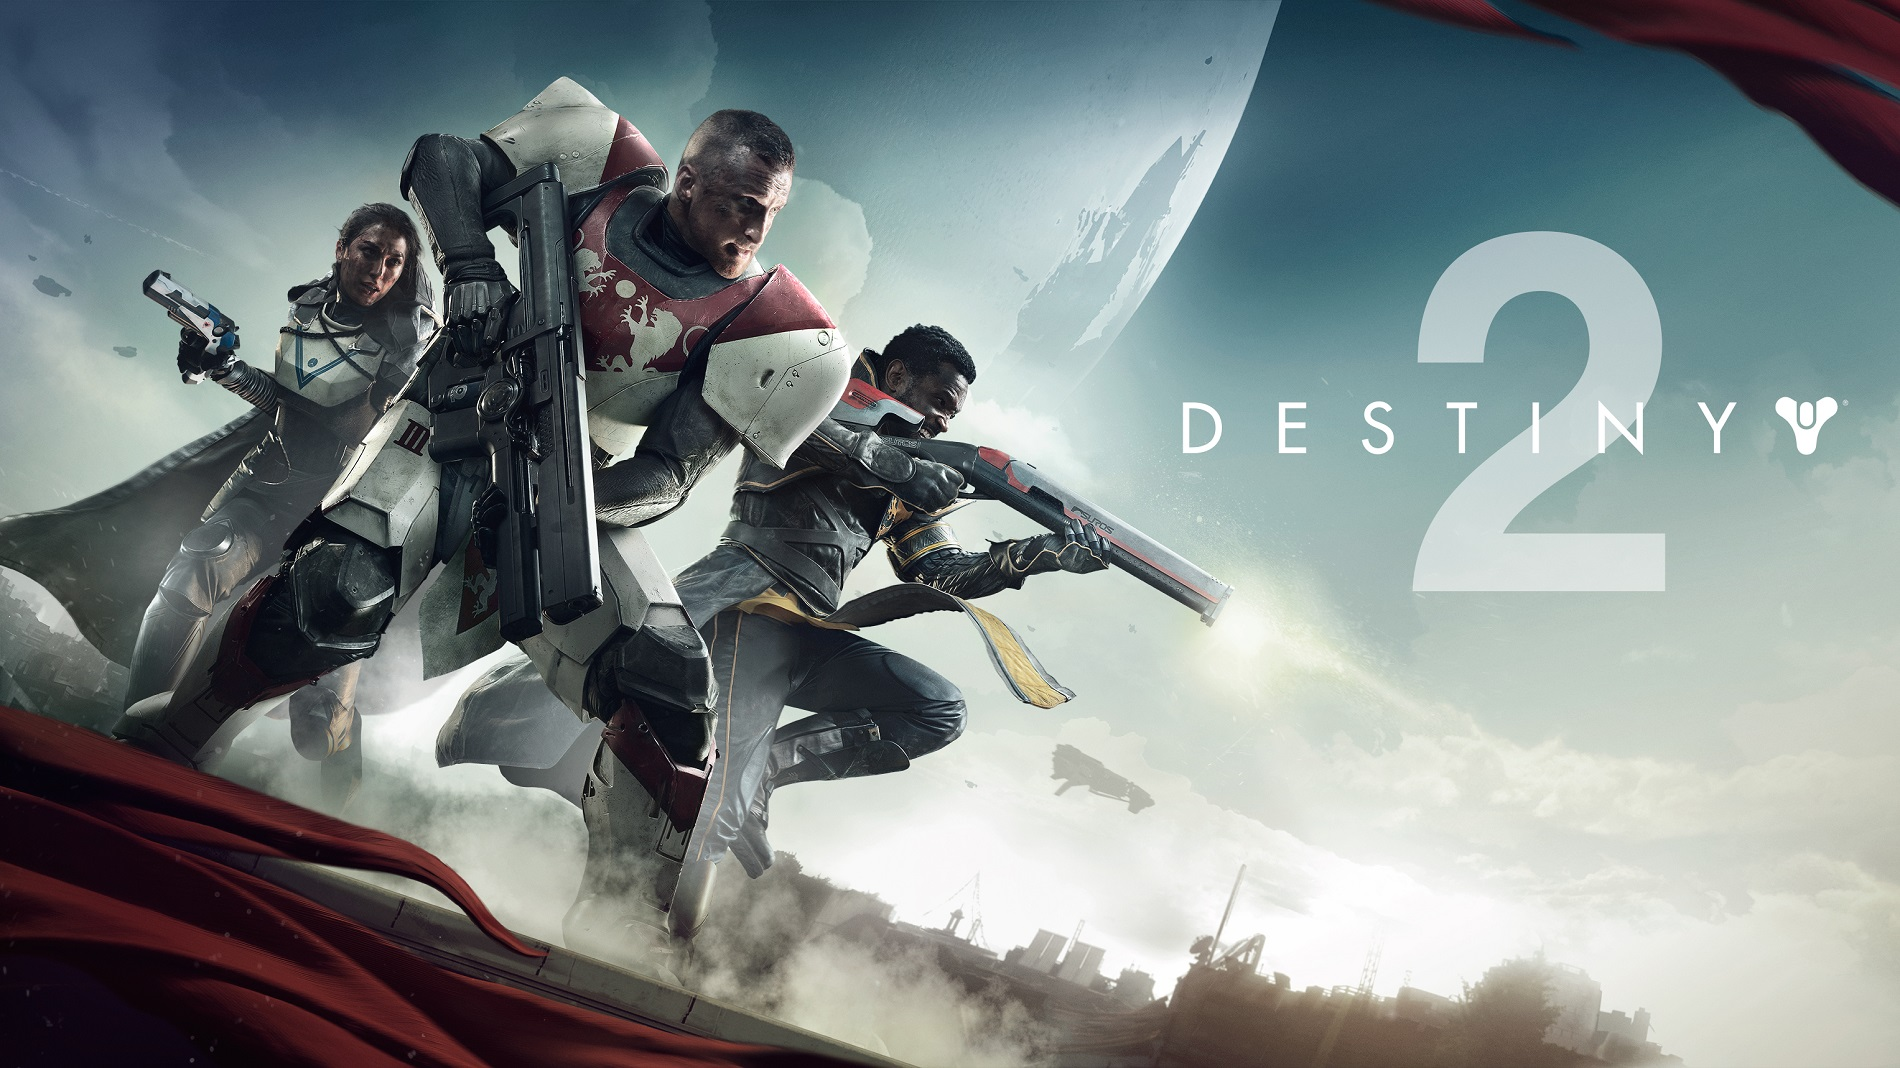 'Destiny 2:' Locked loadouts, 'Midnight Coup' drops, and running at 60 fps